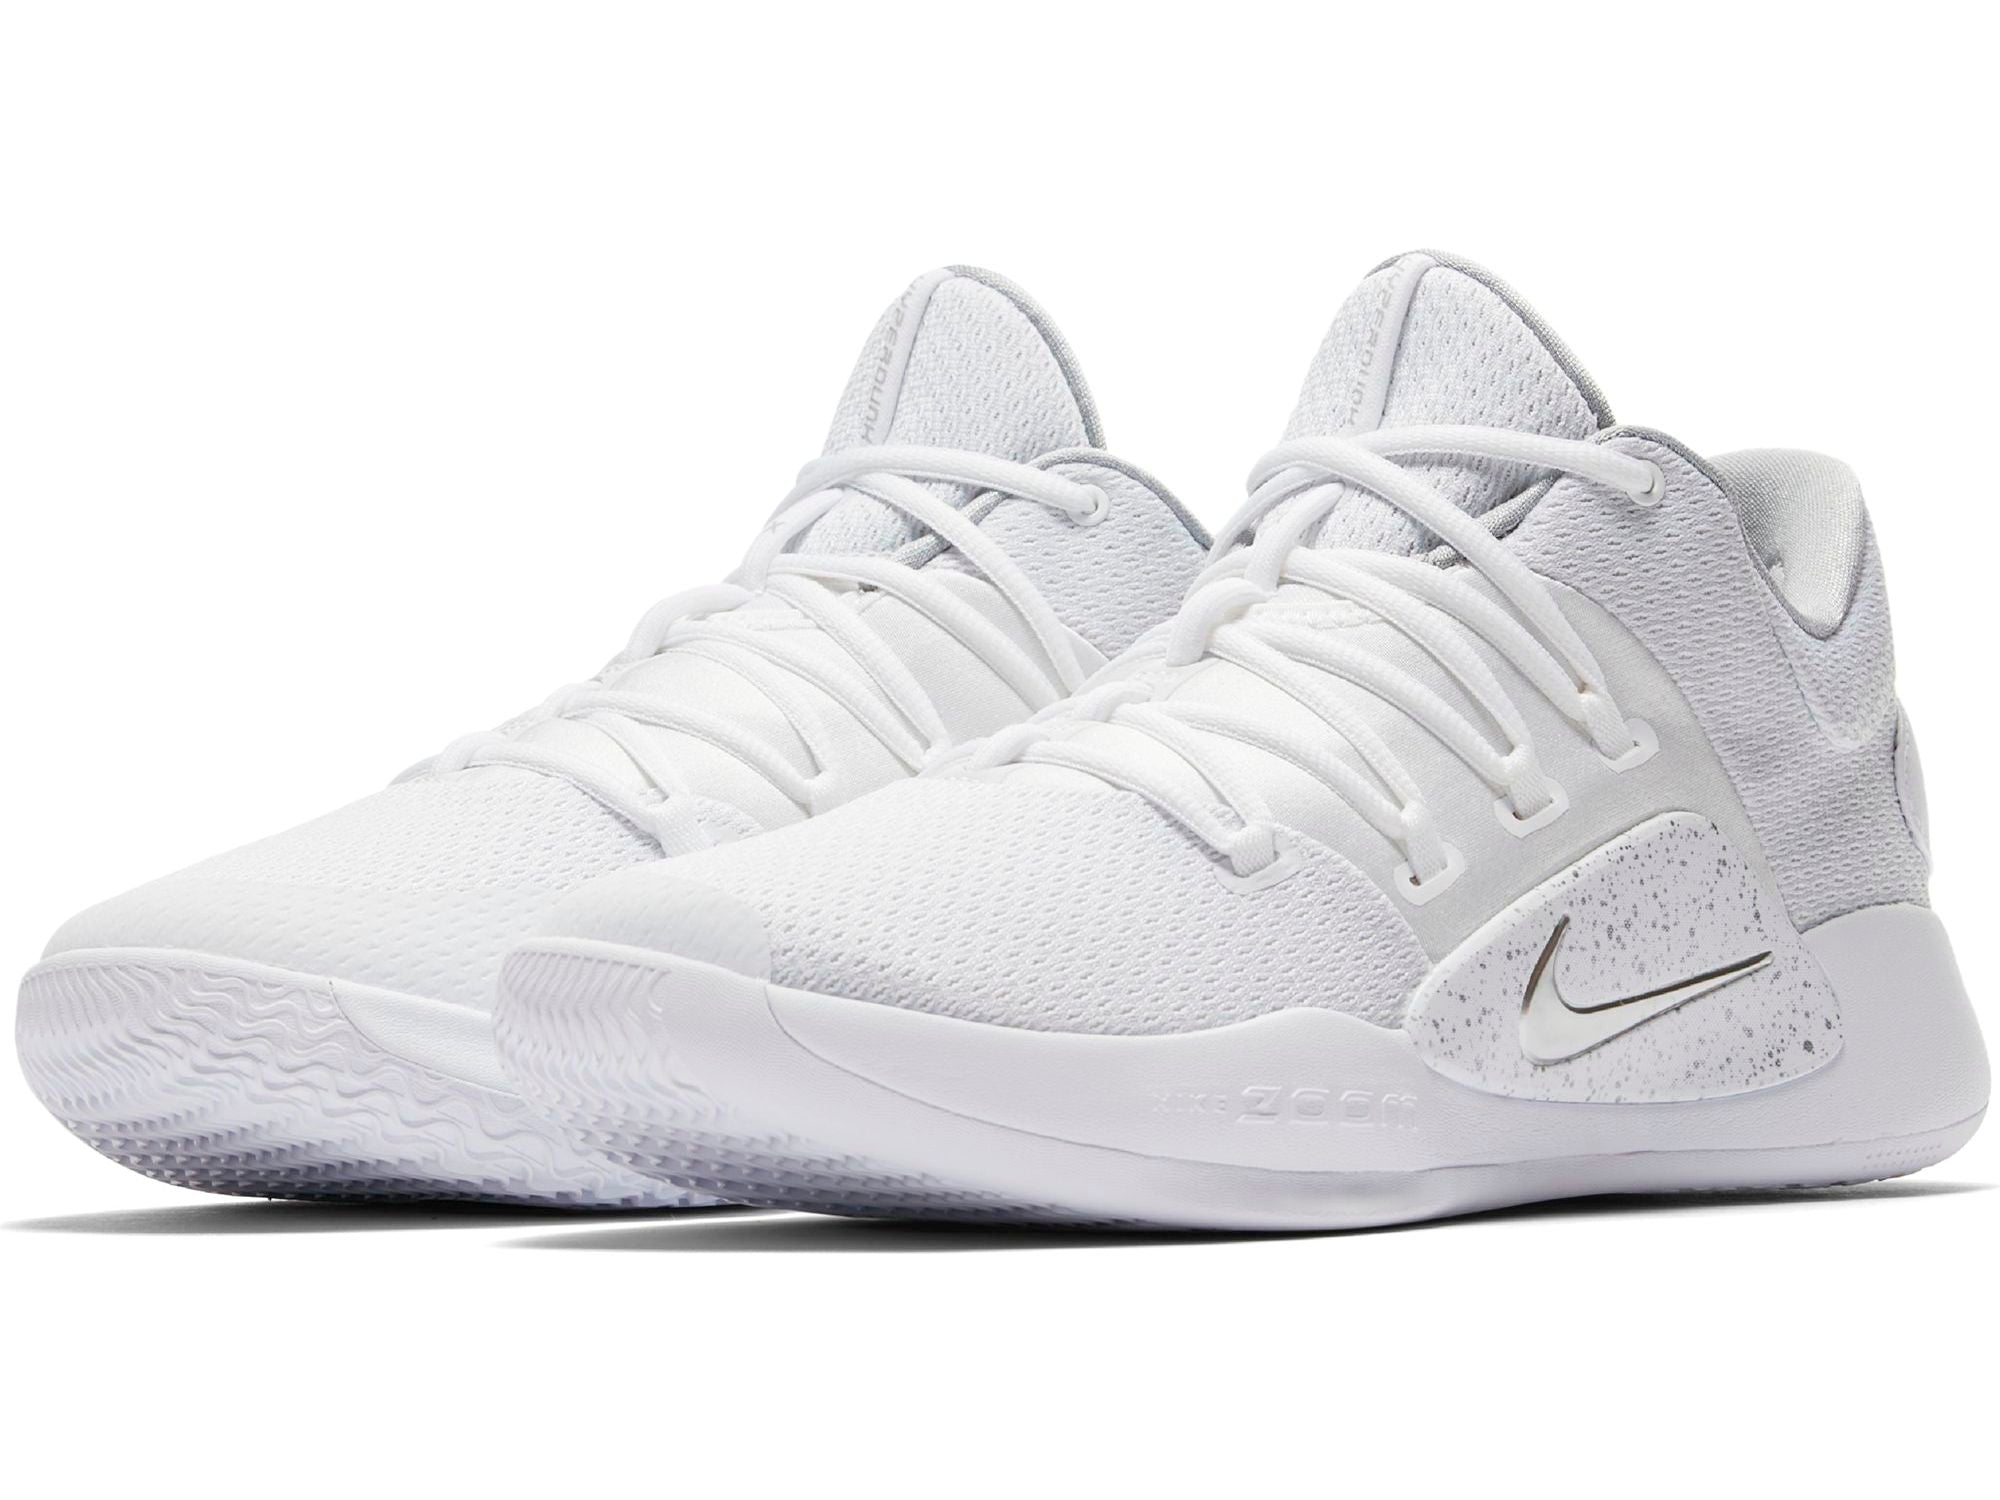 Nike Basketball Hyperdunk X Low Shoe - White/Pure Platinum/Clear